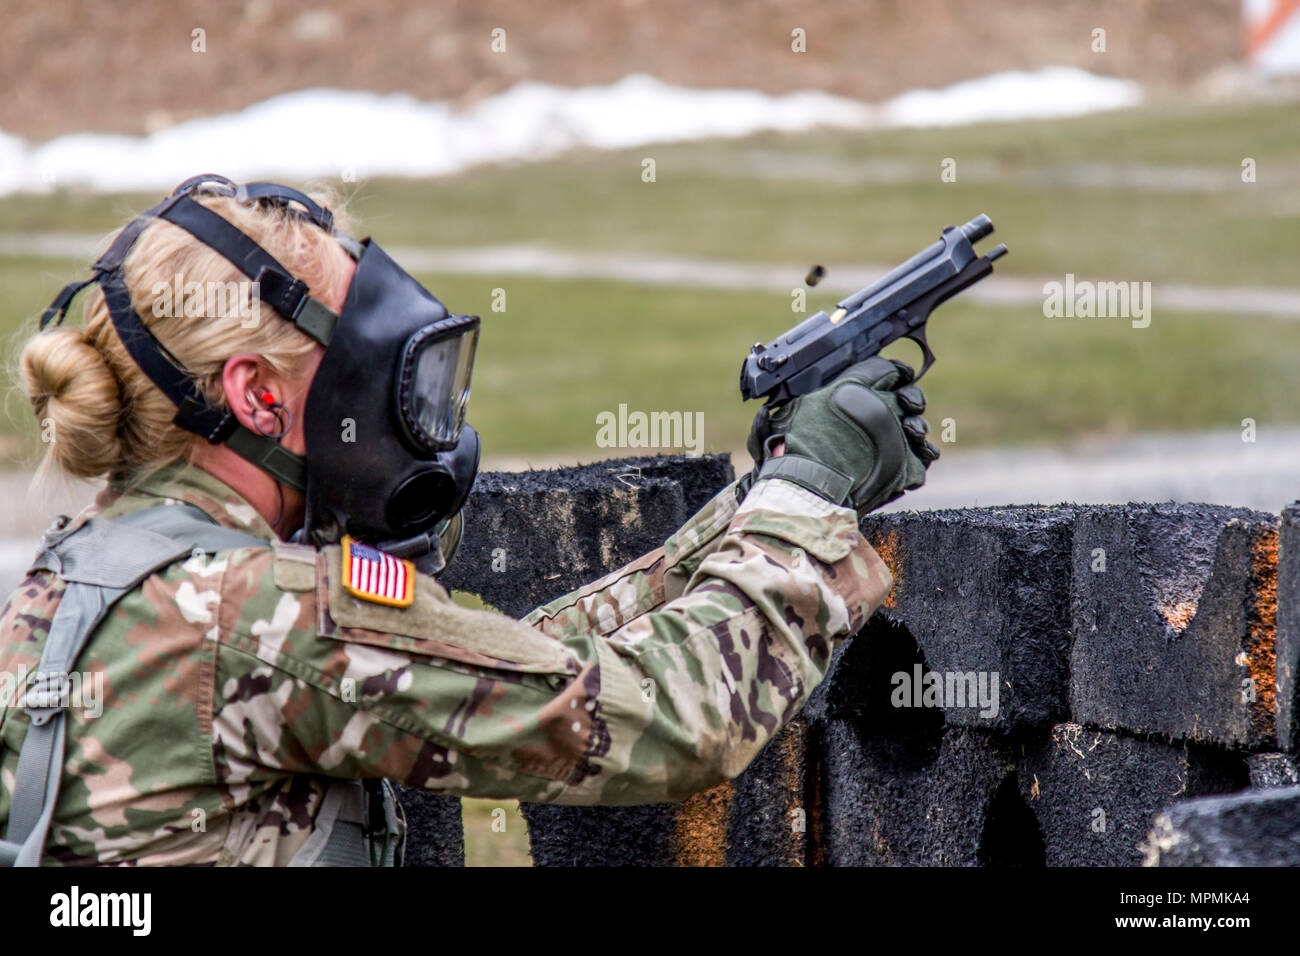 Spec. Courtney Natal fires the M-9 pistol while wearing a protective mask during the stress shoot lane, combining physical tests and shooting events during the New York Army National Guard  Best Warrior Competition at Camp Smith Training Site March 30, 2017. The Best Warrior competitors represent each of New York's brigades after winning competitions at the company, battalion, and brigade levels. At the state level they are tested on their physical fitness, military knowledge, endurance, marksmanship, and land navigation skills. The two winners of the competition, one junior enlisted and one N Stock Photo